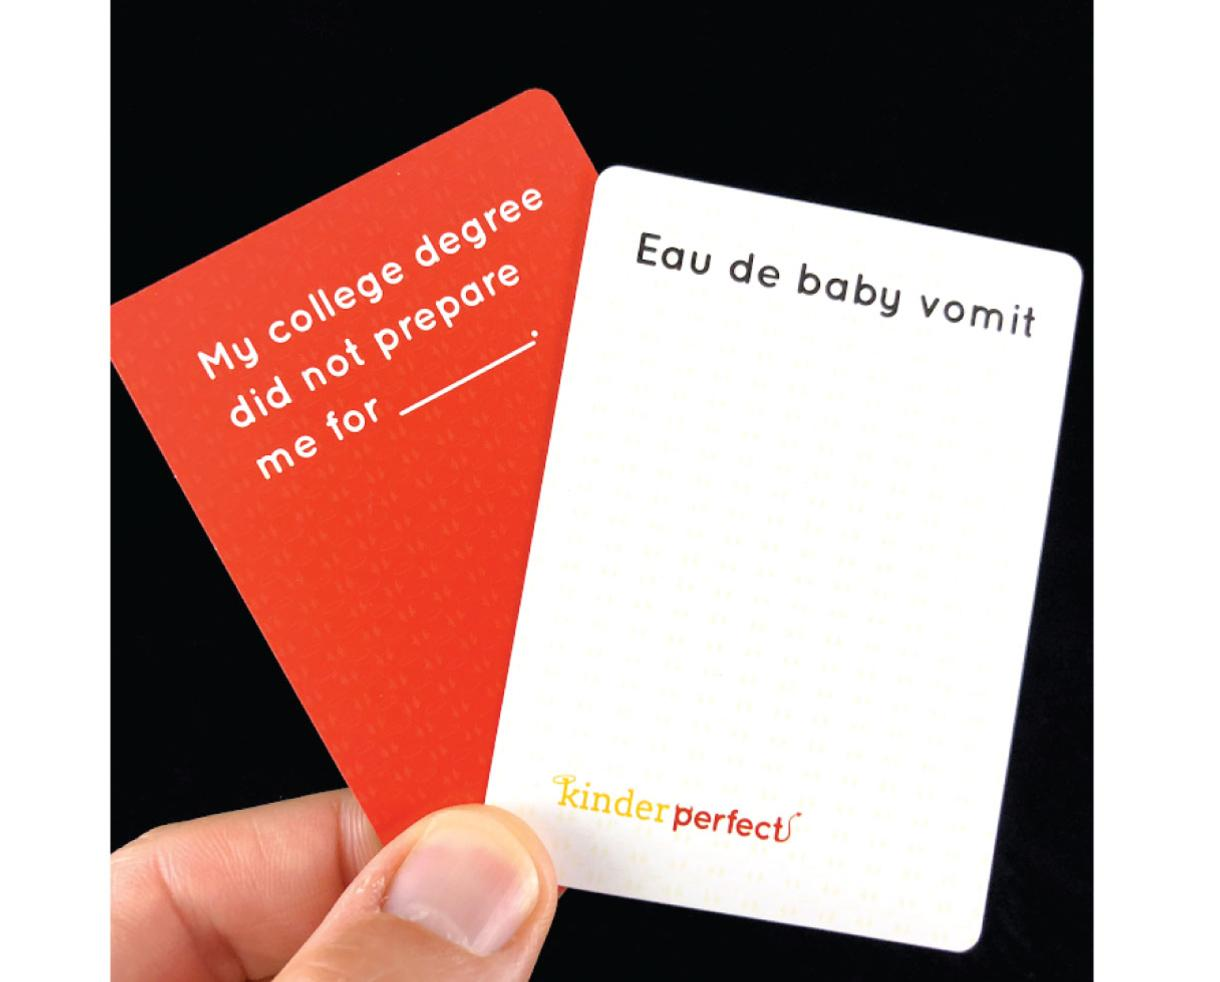 $20 for KinderPerfect the Ultimate Party Card Game for Awesome Parents (20% Off)